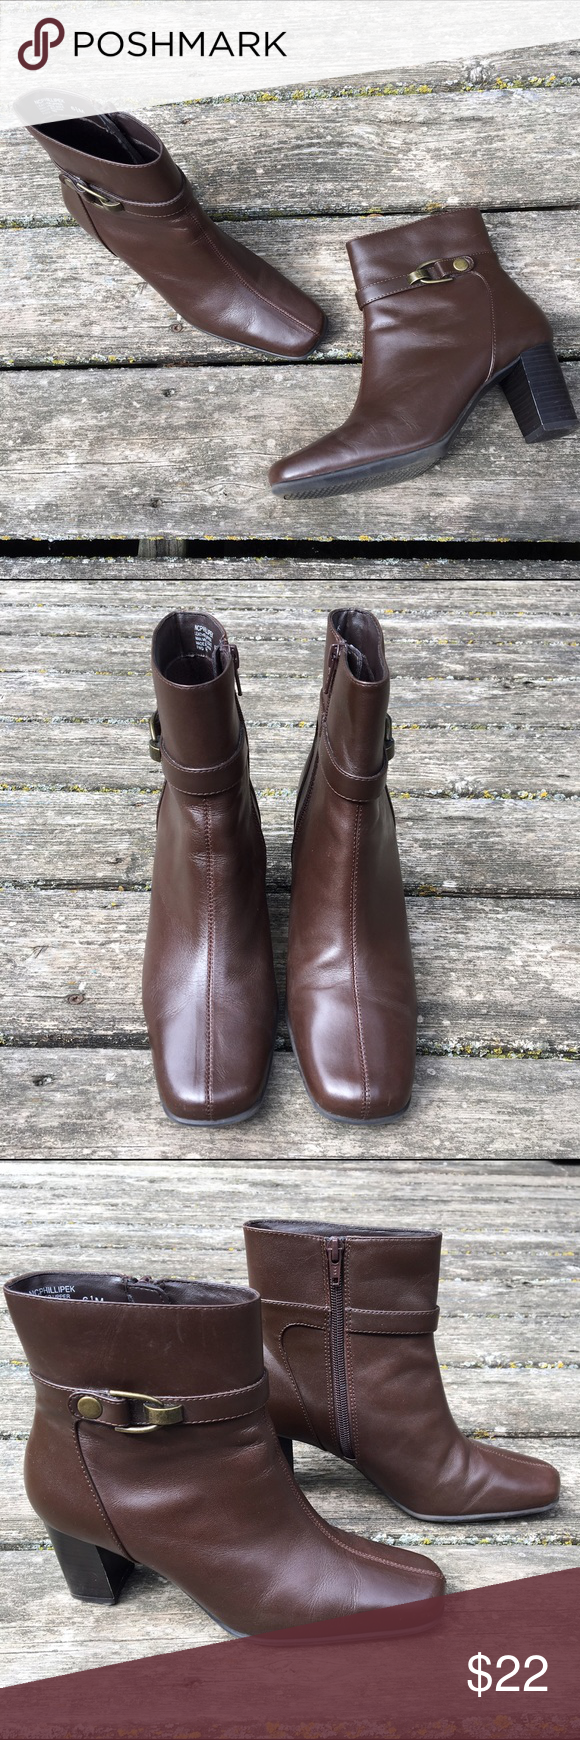 """🎀NEW LISTING🎀 Brown Leather Ankle Boots Brown Leather Ankle Boots with buckle accent by Nine & Co (Nine West). Size 6.5M. In great condition, see fourth photo for signs of wear. 2.75"""" heels. Nine West Shoes Ankle Boots & Booties"""